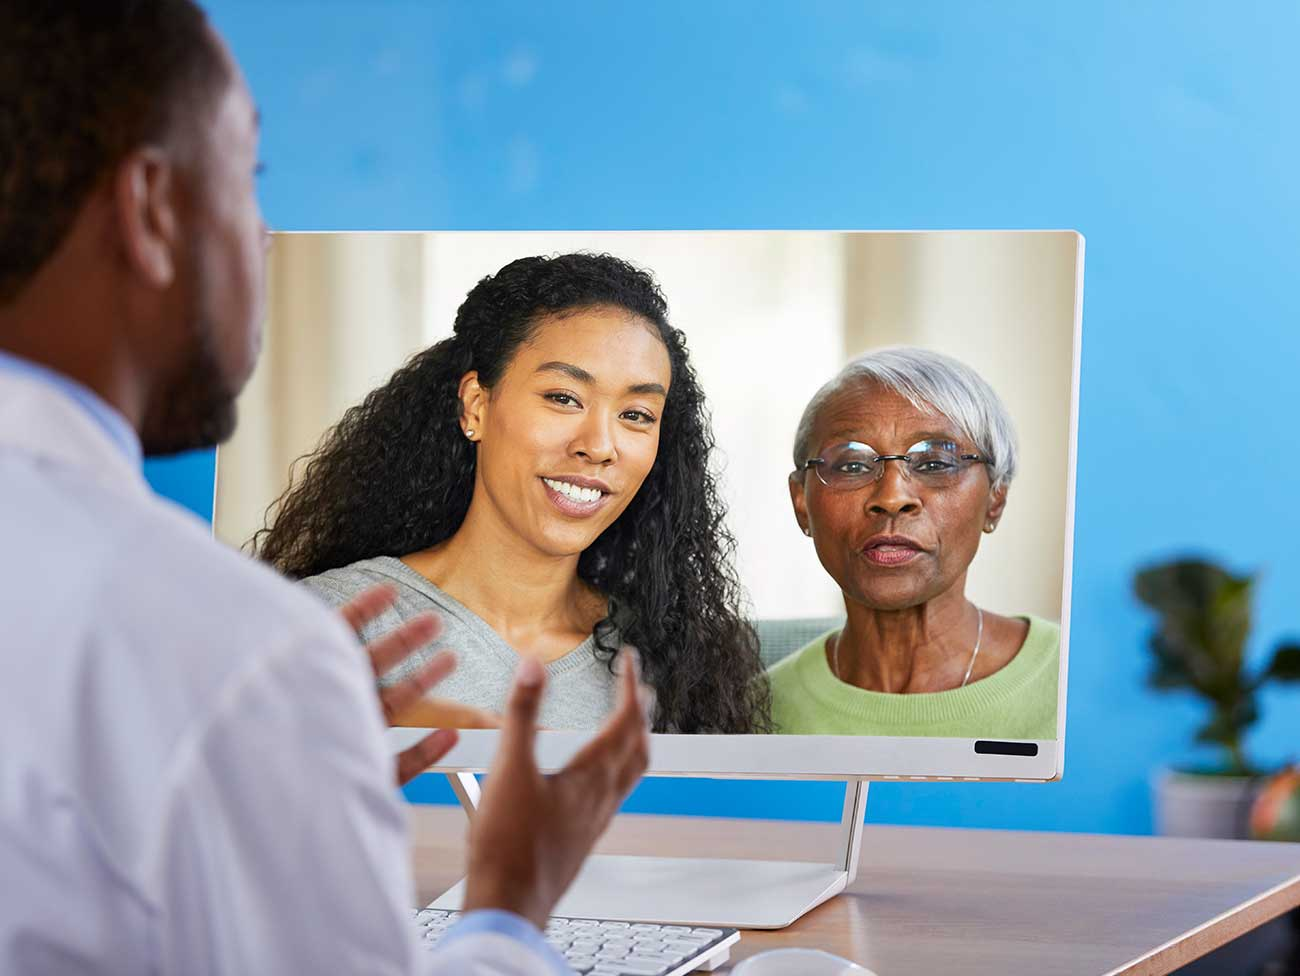 Male physician chatting with a woman and her mother over video chat on a computer screen